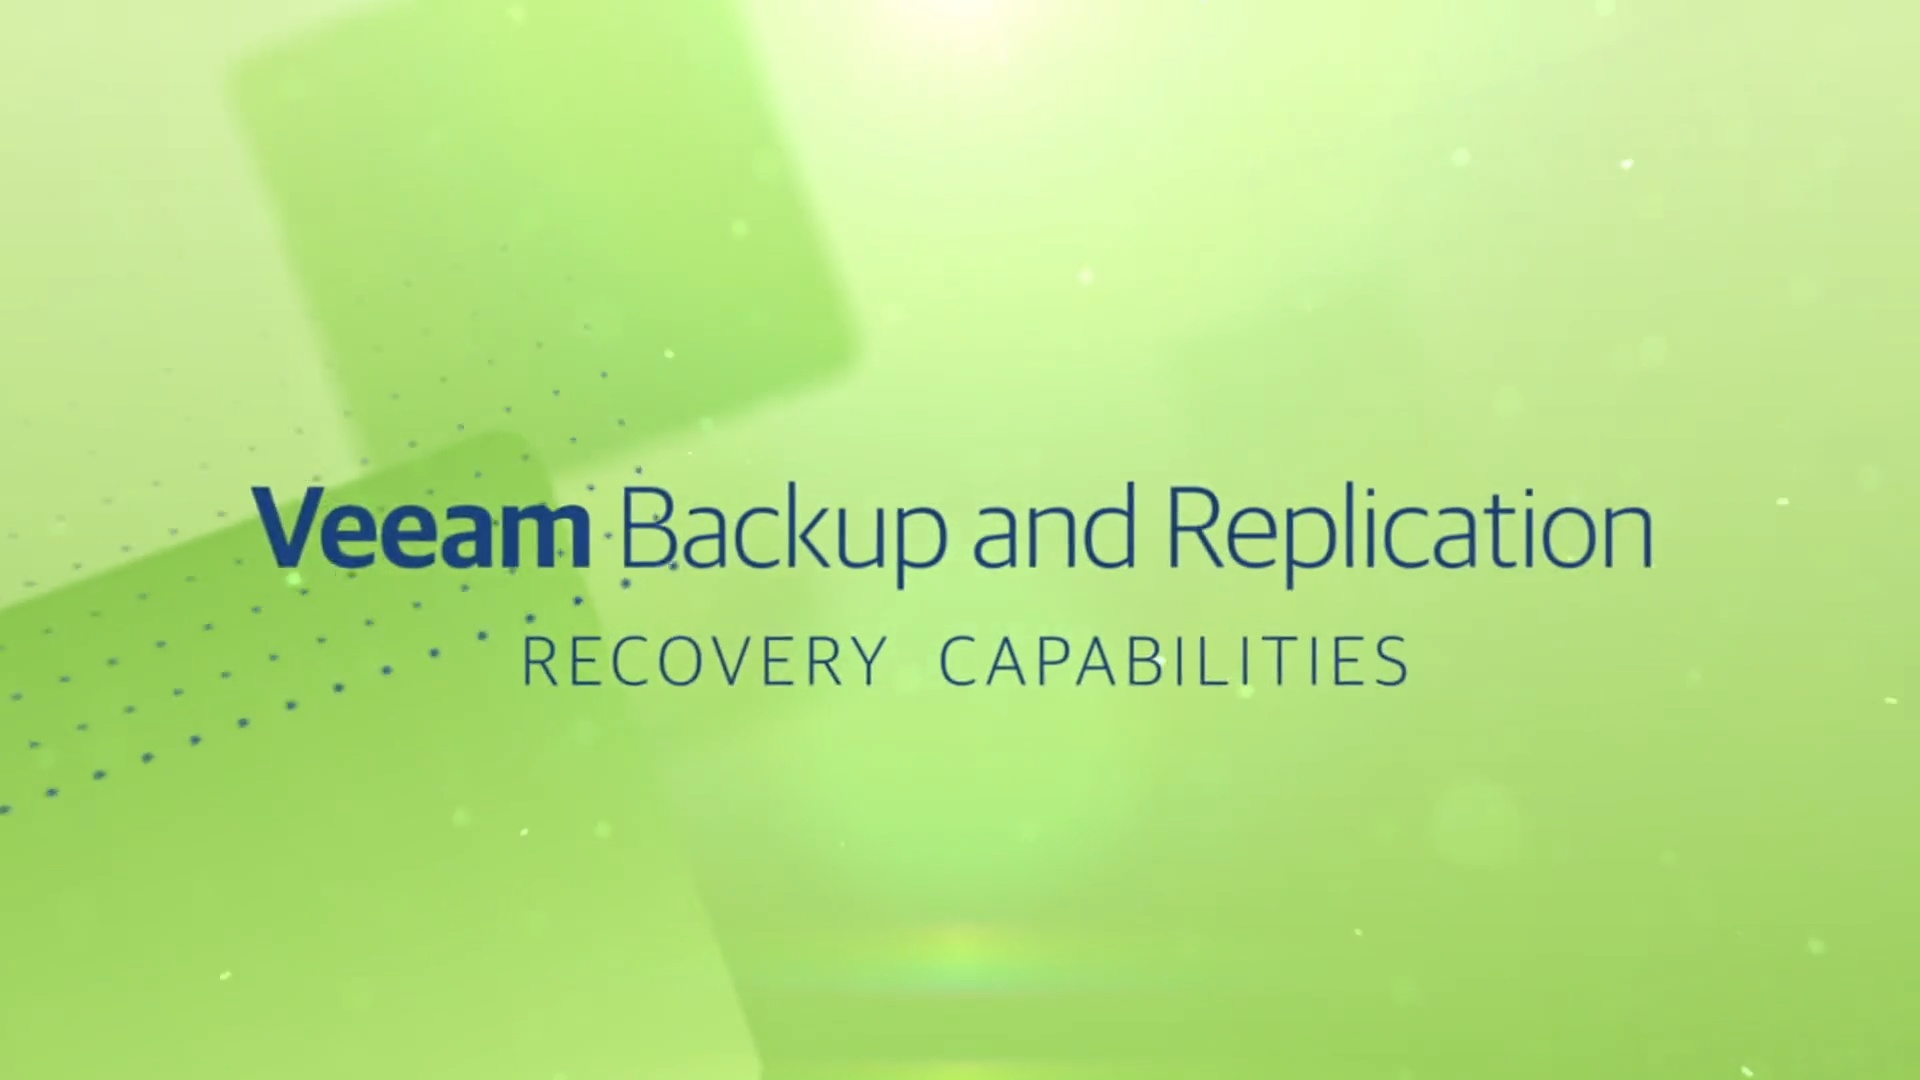 Product launch v11 - VBR - Overview video - Recovery Capabilities